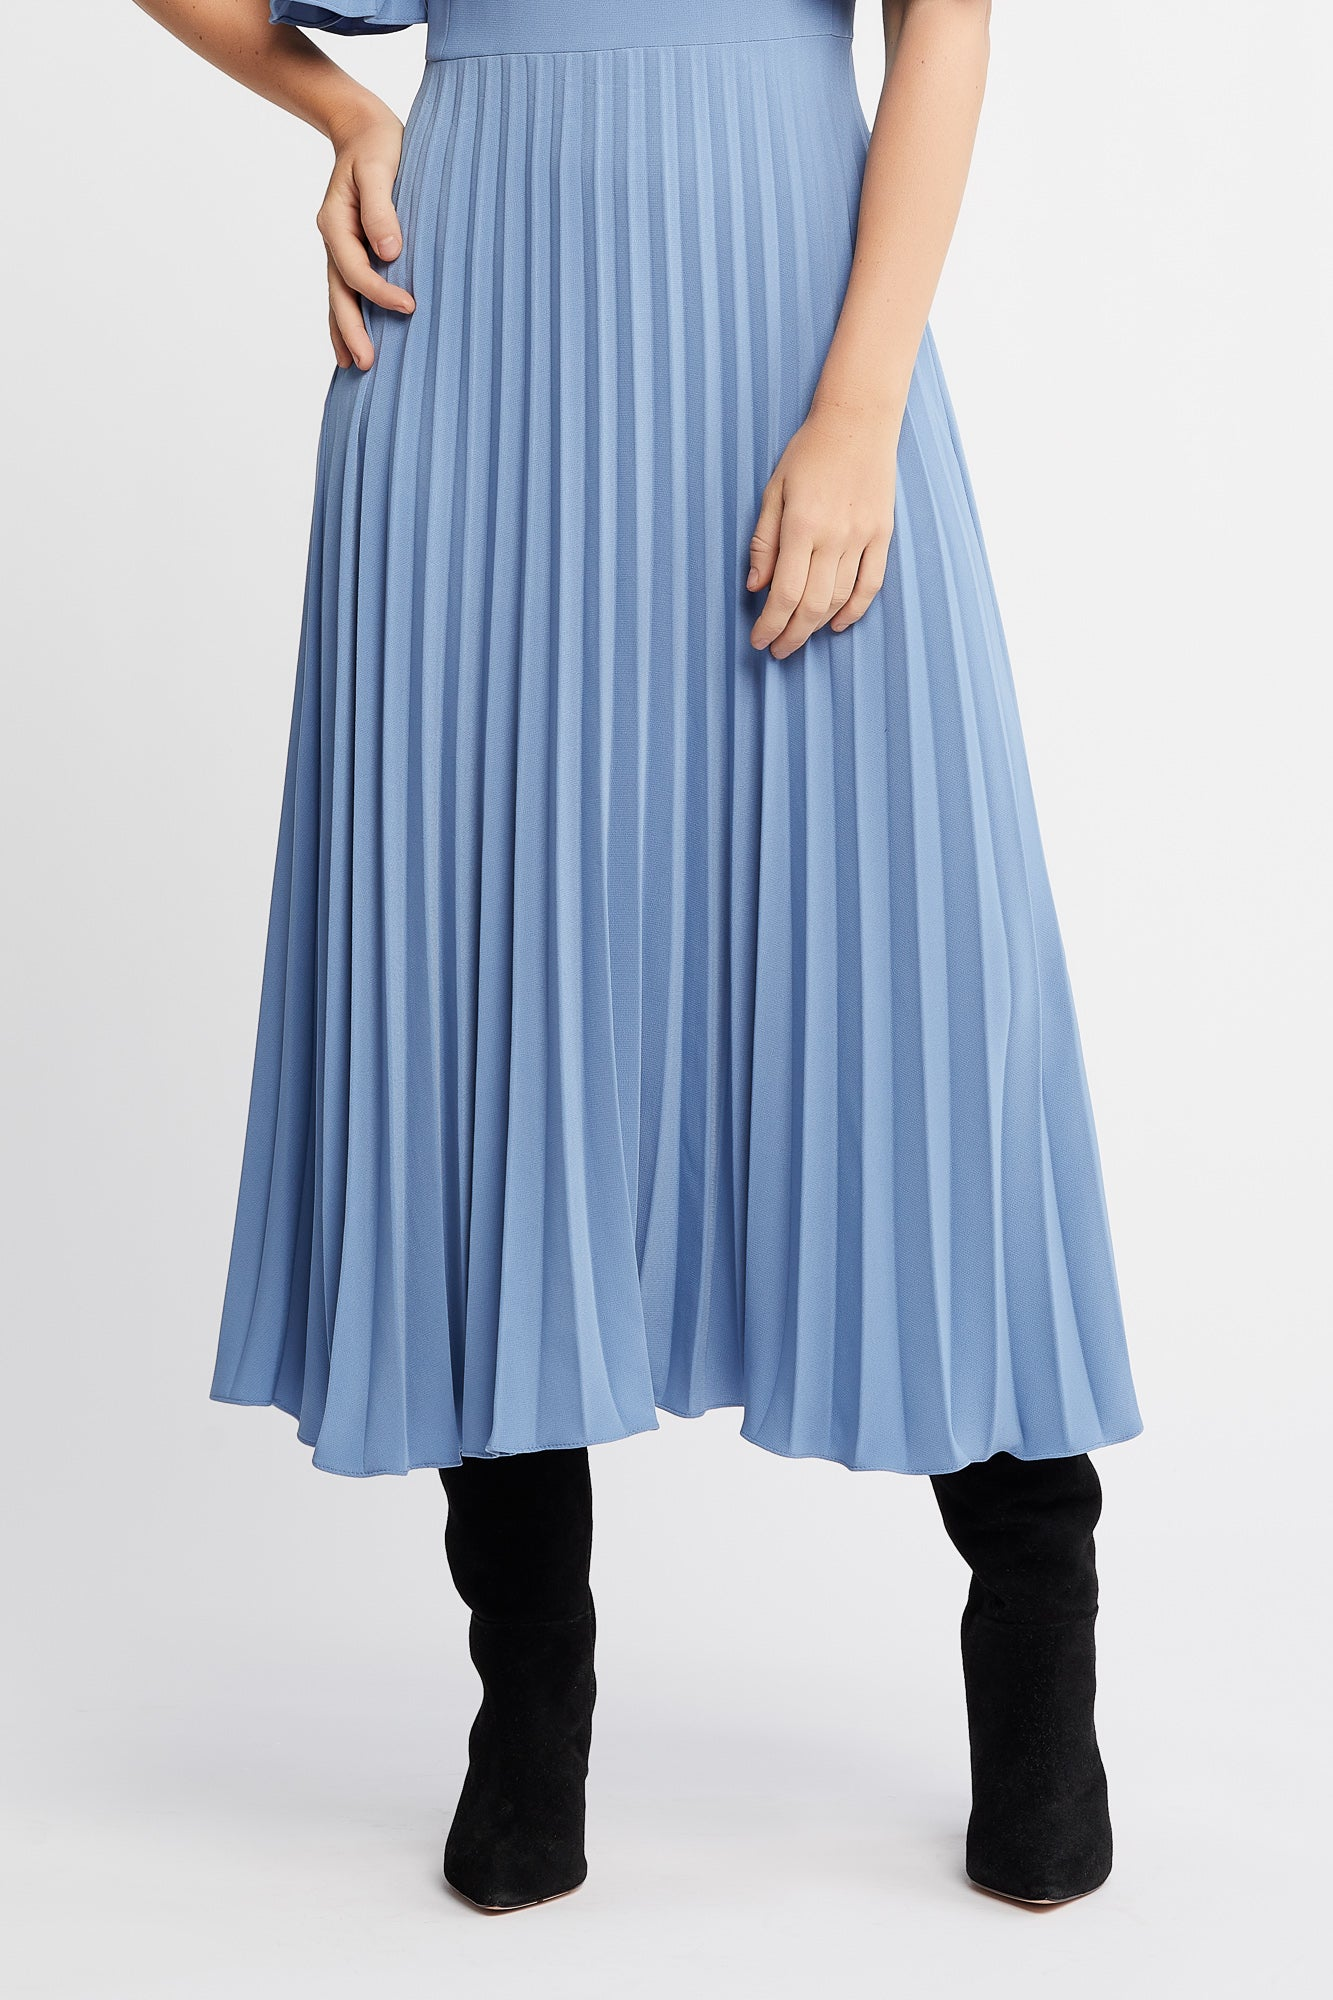 Cannelle Dress in Blue with Flared Pleated Sleeves and Skirt